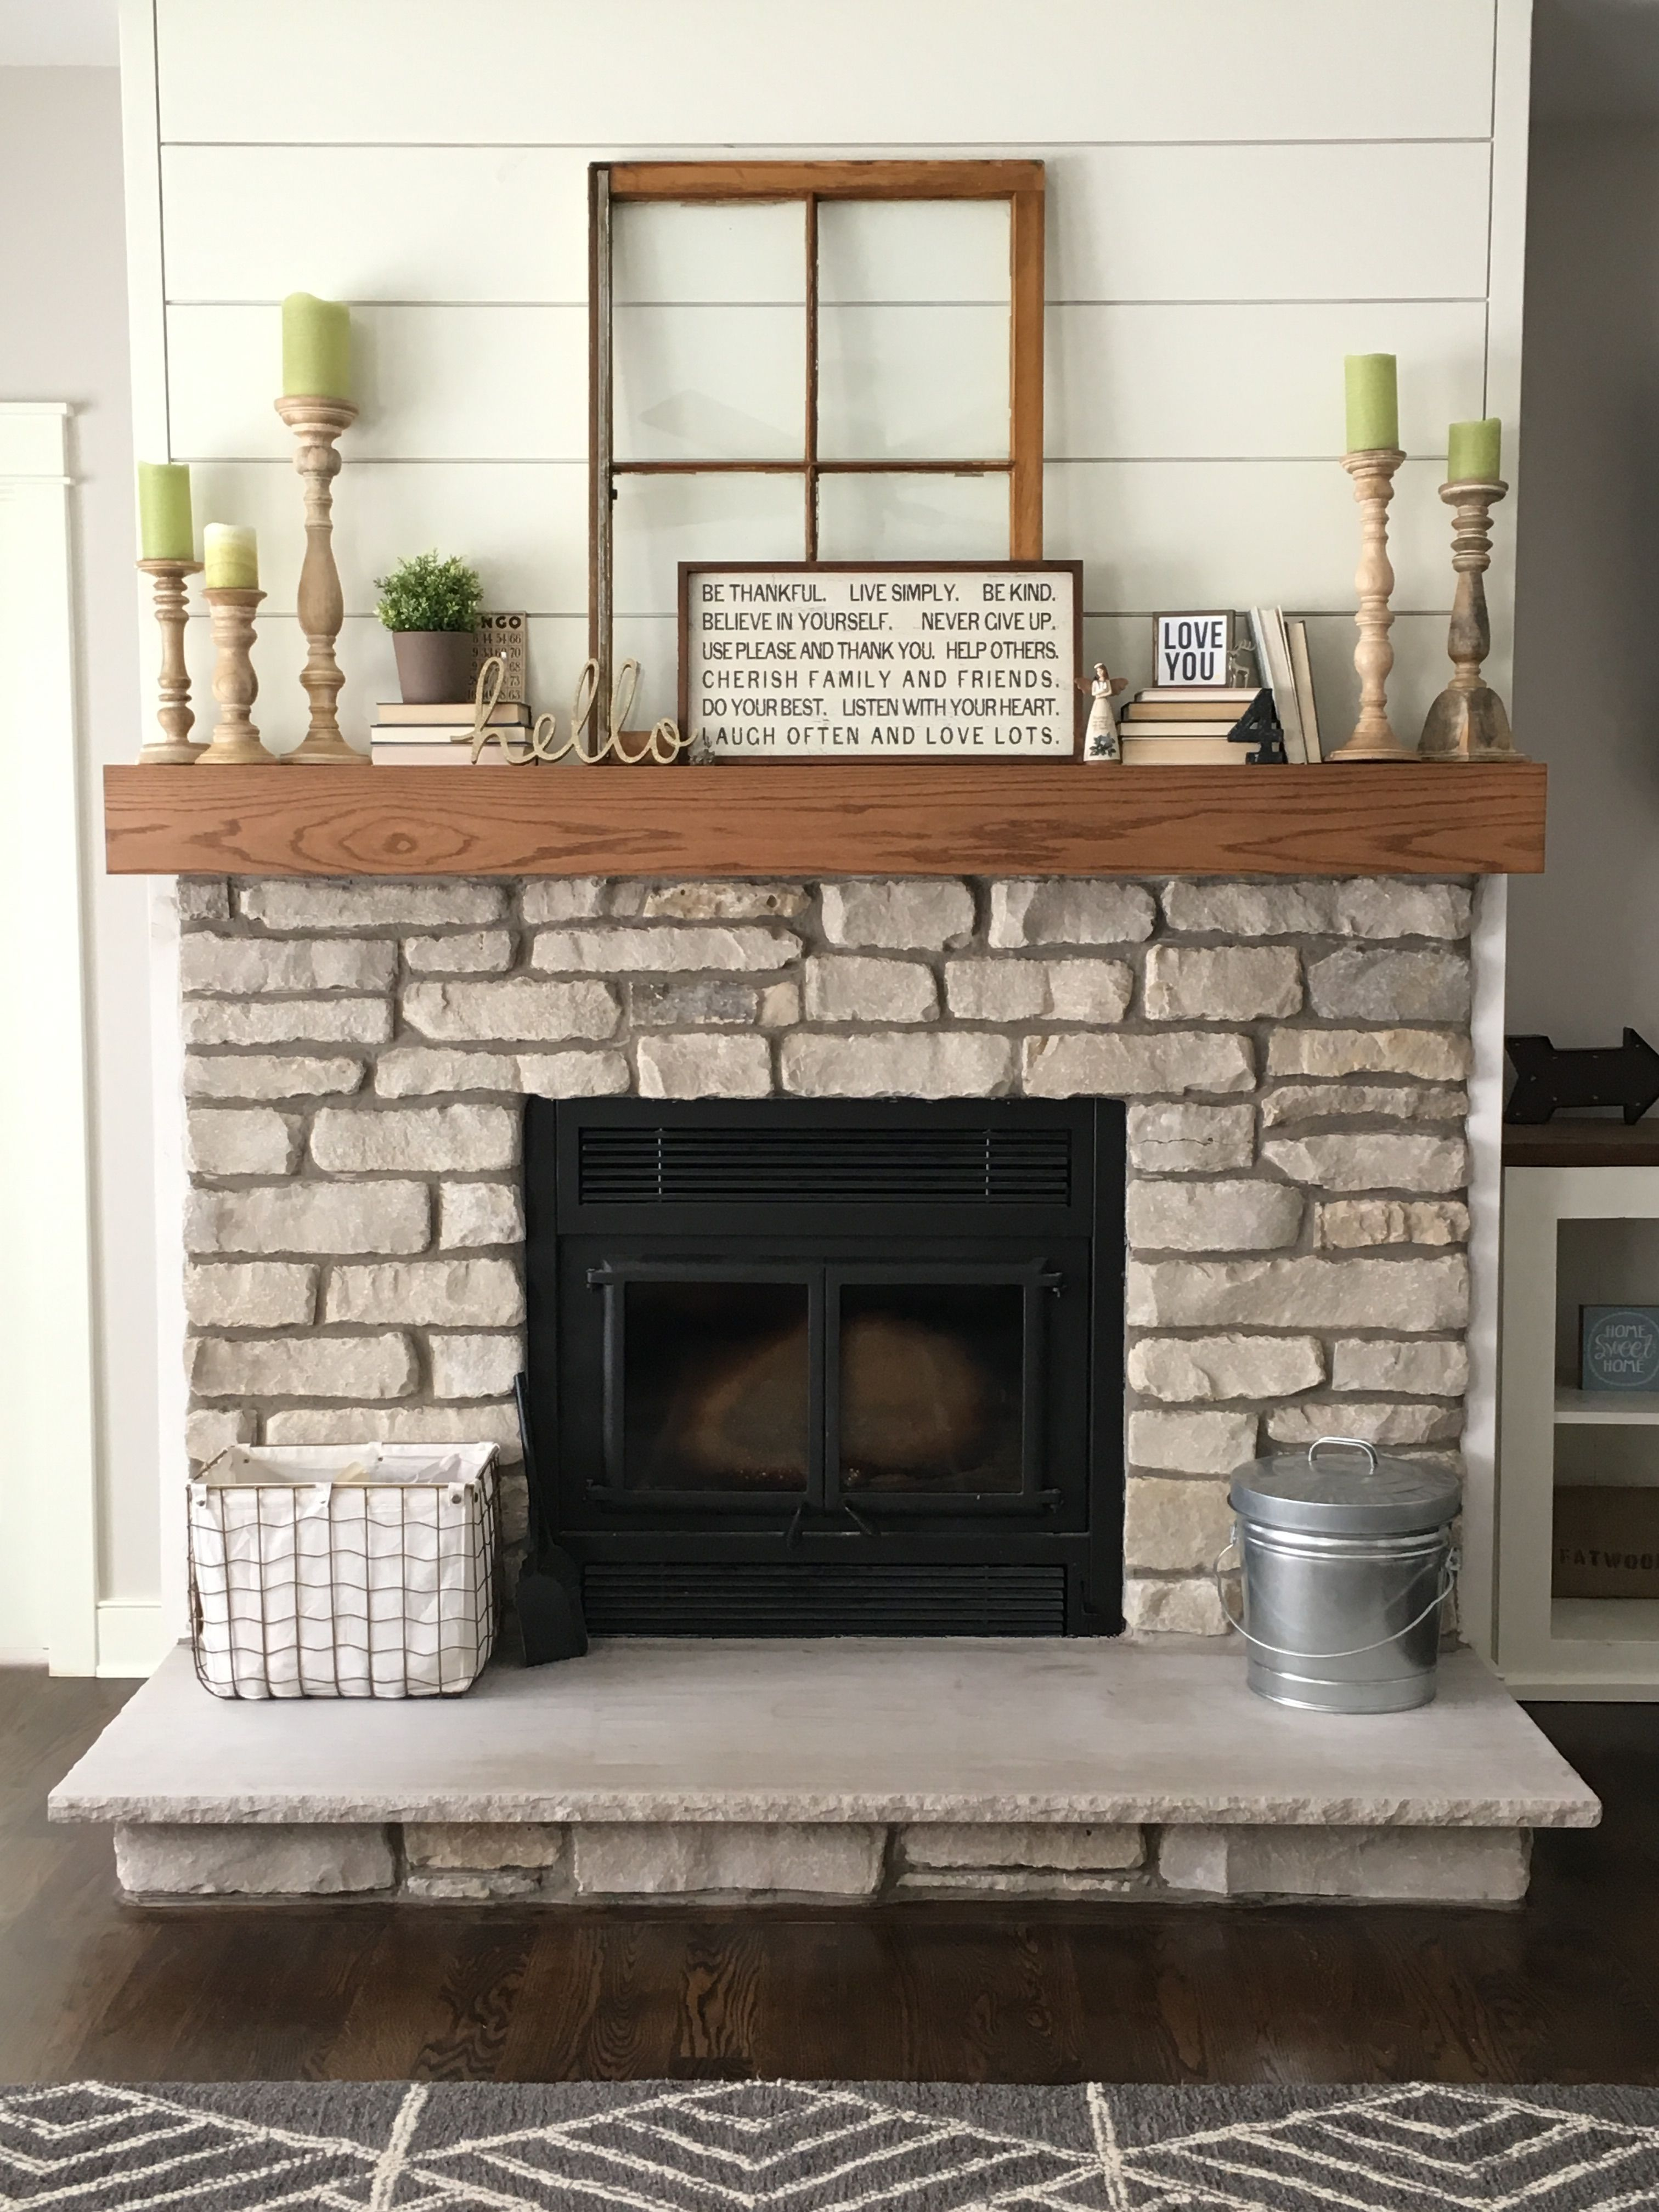 Image Result For Shiplap Above Fireplace Rustic Farmhouse Fireplace Farmhouse Fireplace Decor Home Fireplace